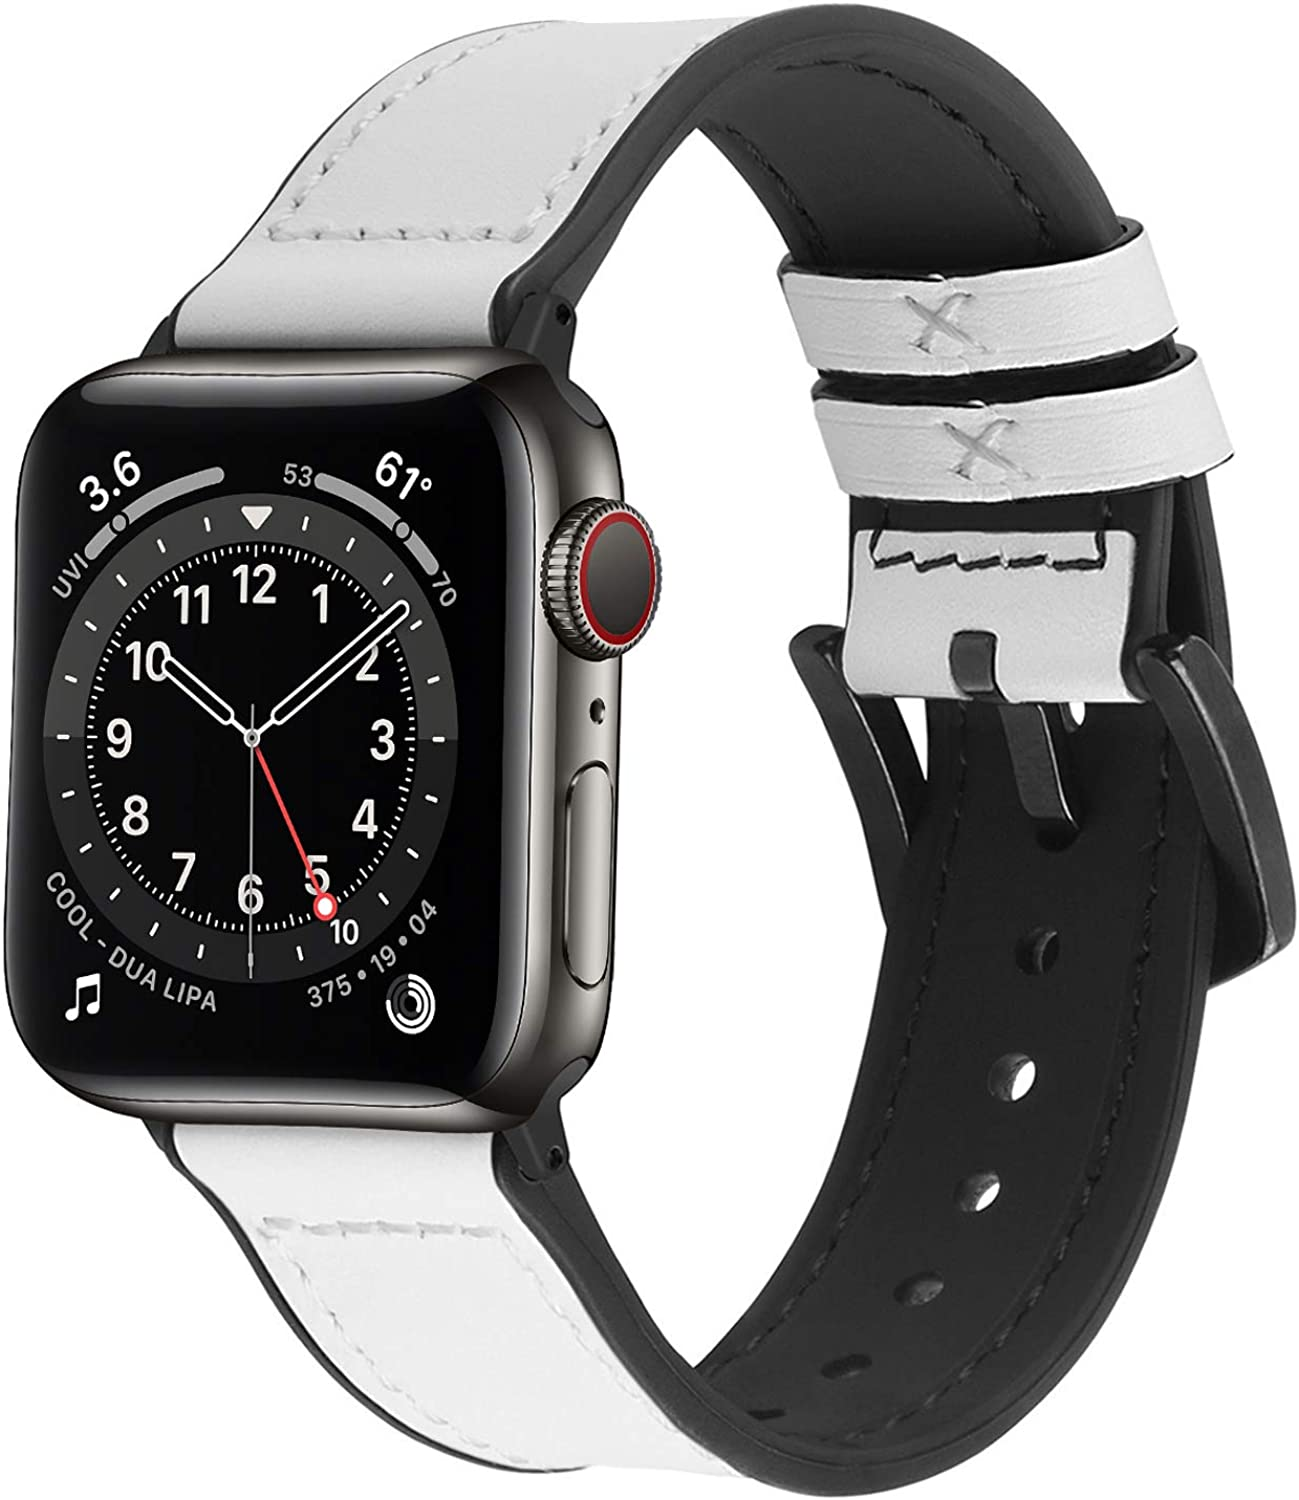 Vintage Apple Watch Band, Fullmosa Meex Silicone Watch Strap with Leather, Compatible for iWatch Series SE/6/5/4/3/2/1, 38mm 40mm 42mm 44mm